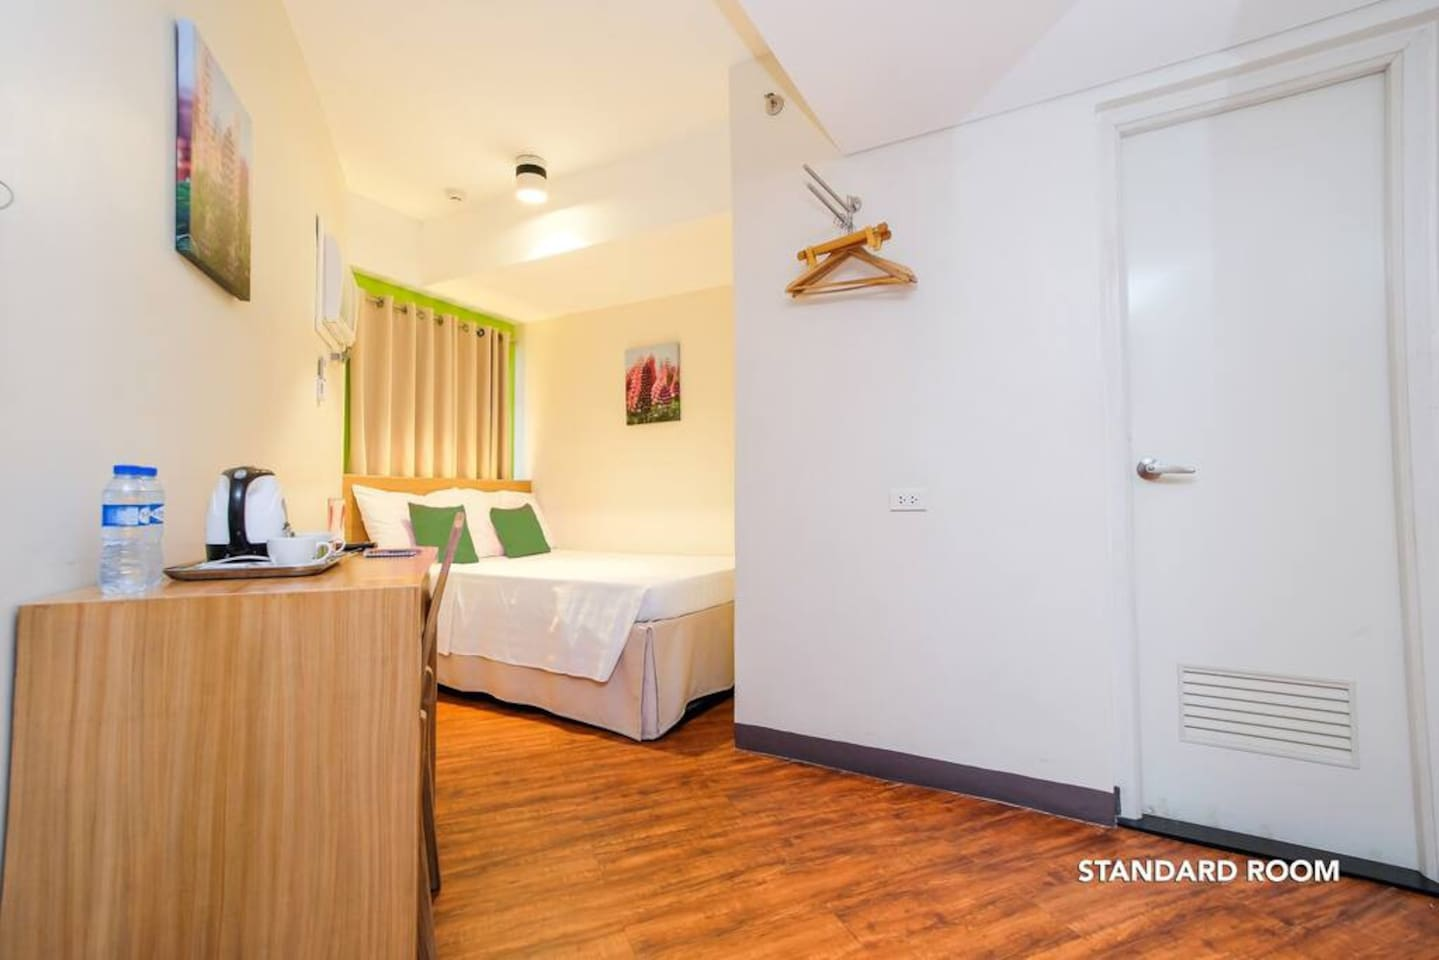 Interior of Standard Double Room at MySpace Hotel @BGC.